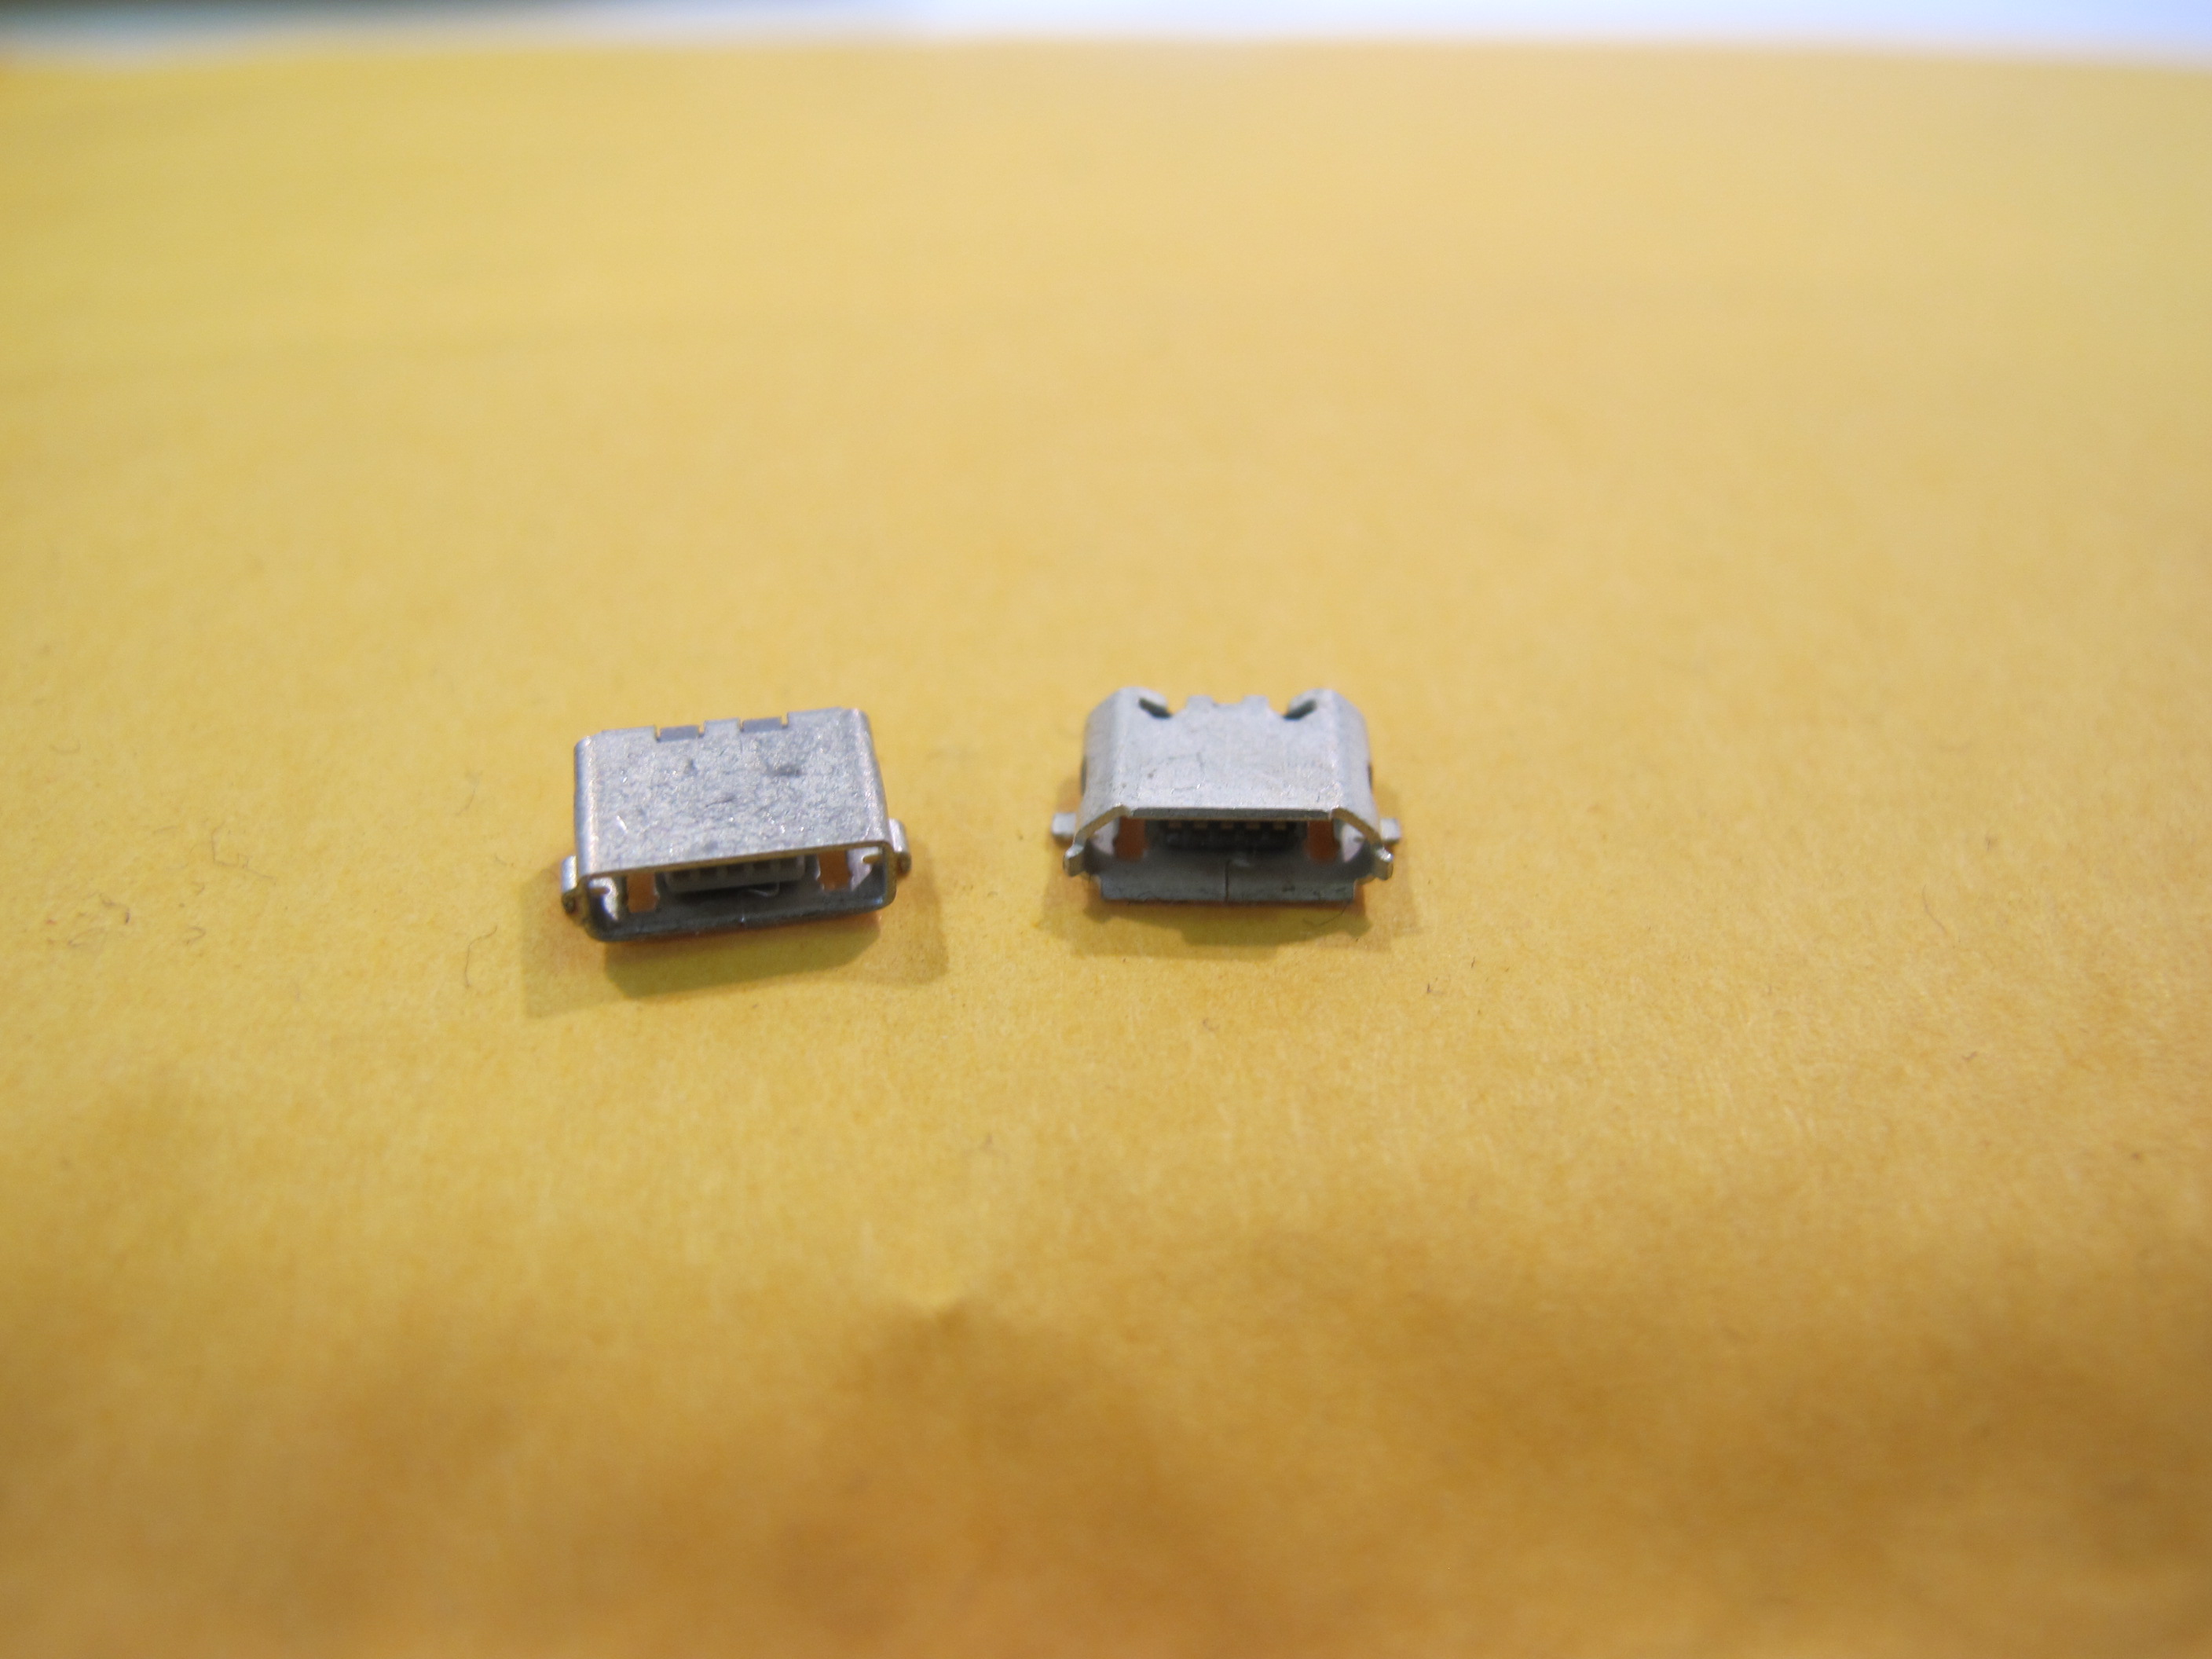 2 X Dell Venue 8 Pro Tablet Micro Usb Charger Charging